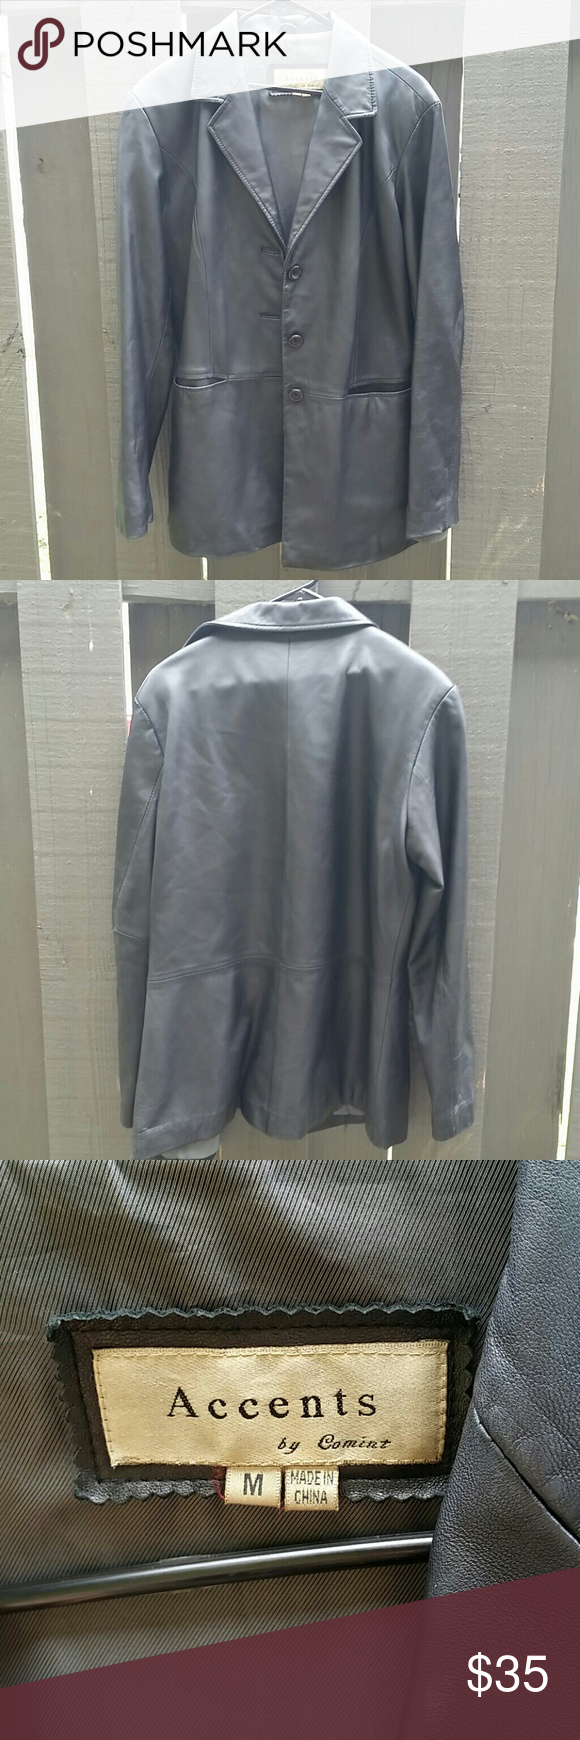 Accents By Comint Leather Jacket Size Medium Excellent Condition A Couple Of Tiny Spots On Back 100 Genuine Le Clothes Design Leather Jacket Fashion Design [ 1740 x 580 Pixel ]